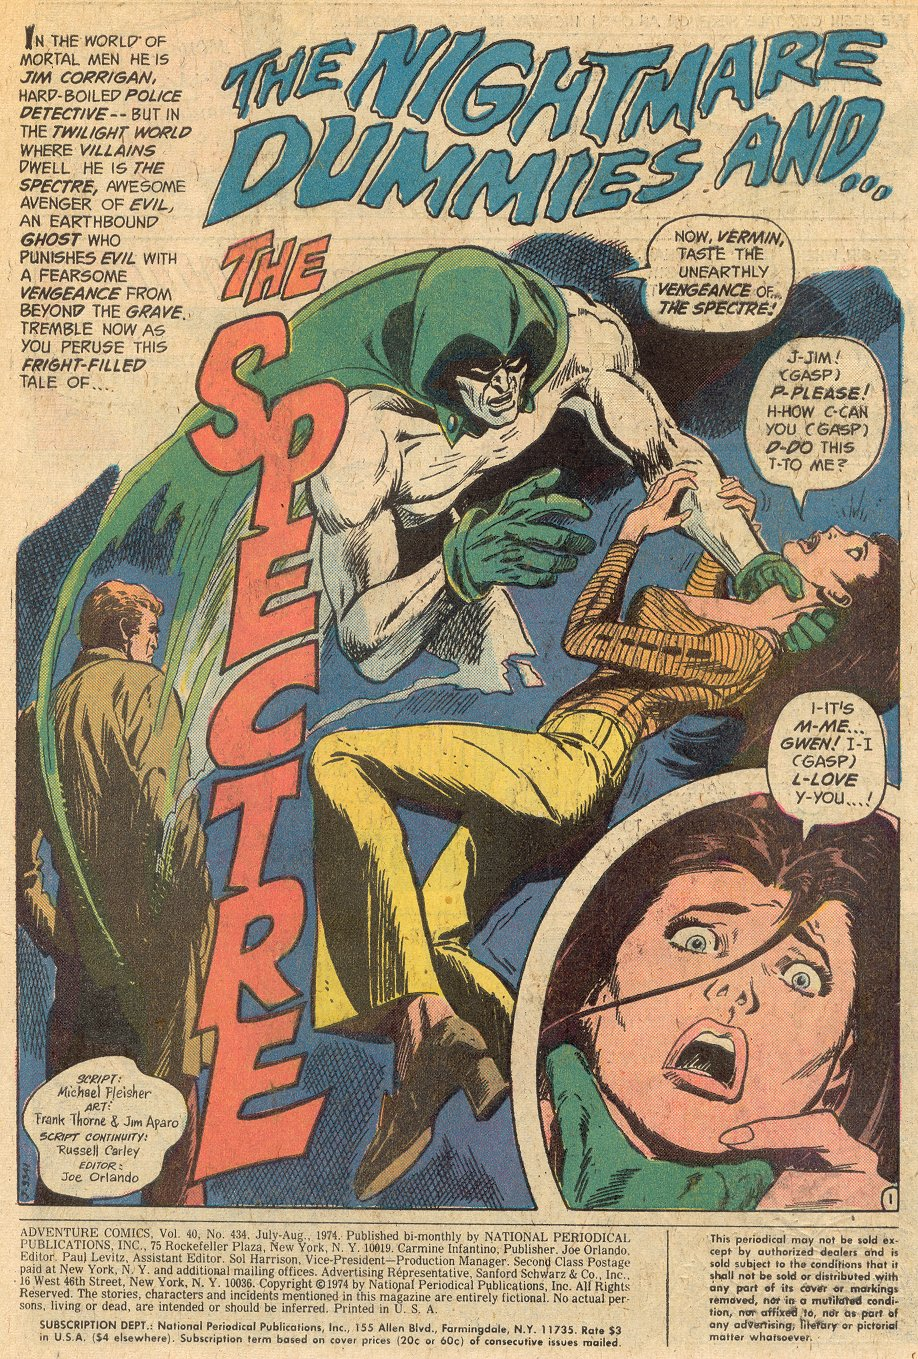 Adventure Comics (1938) #434 pg.1, art penciled by Frank Thorne and inked by Jim Aparo.